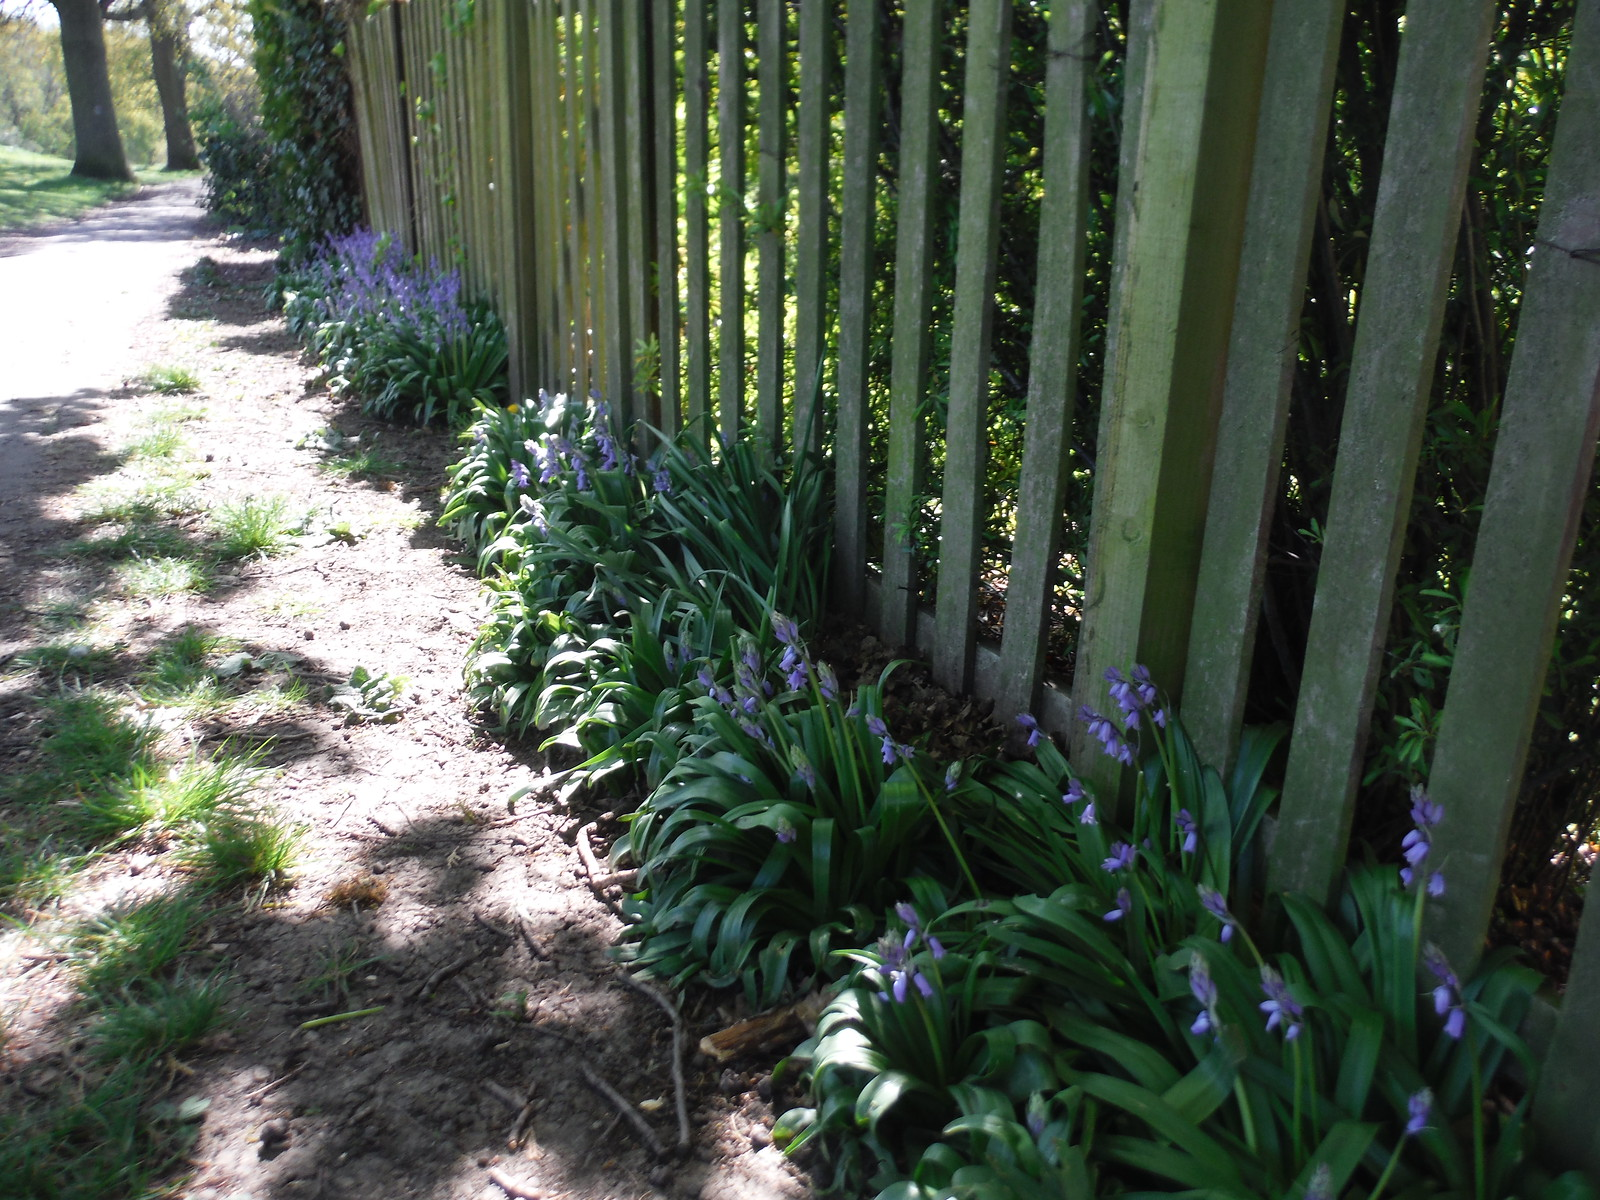 Bluebells along Garden Fence, Oxleas Meadows SWC Short Walk 44 - Oxleas Wood and Shooters Hill (Falconwood Circular)